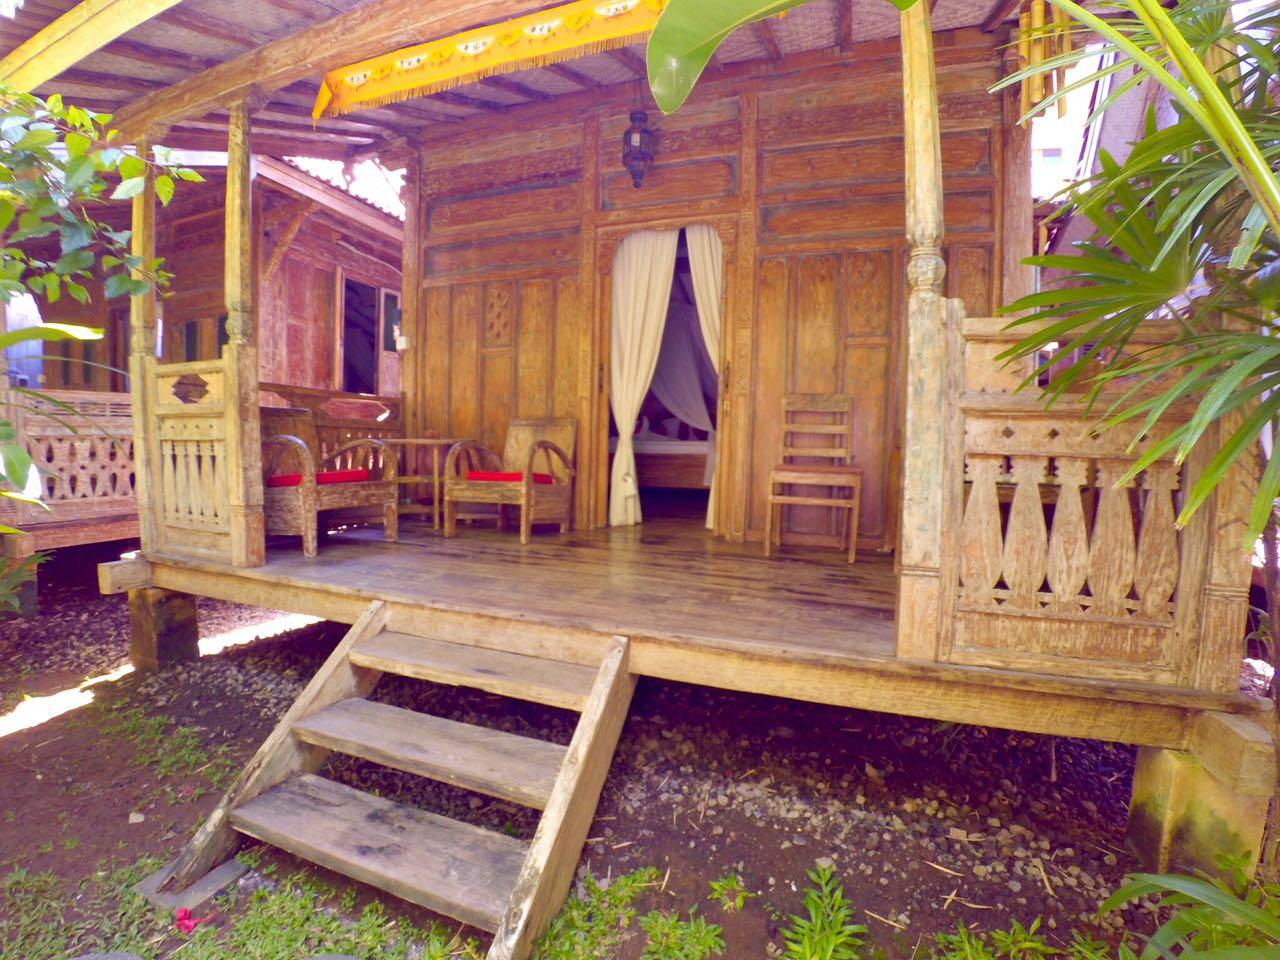 Son Wooden House 3, Denpasar, Bali - Room Deals, Photos ... on double door designs for houses, cathedral ceiling designs for houses, car porches for houses, entrance door designs for houses, wooden door designs for houses, malaysian houses, portico designs for houses, balcony designs for houses, kitchen designs for houses, car portico designs, minecraft designs for houses, single door designs for houses, front deck designs for houses,